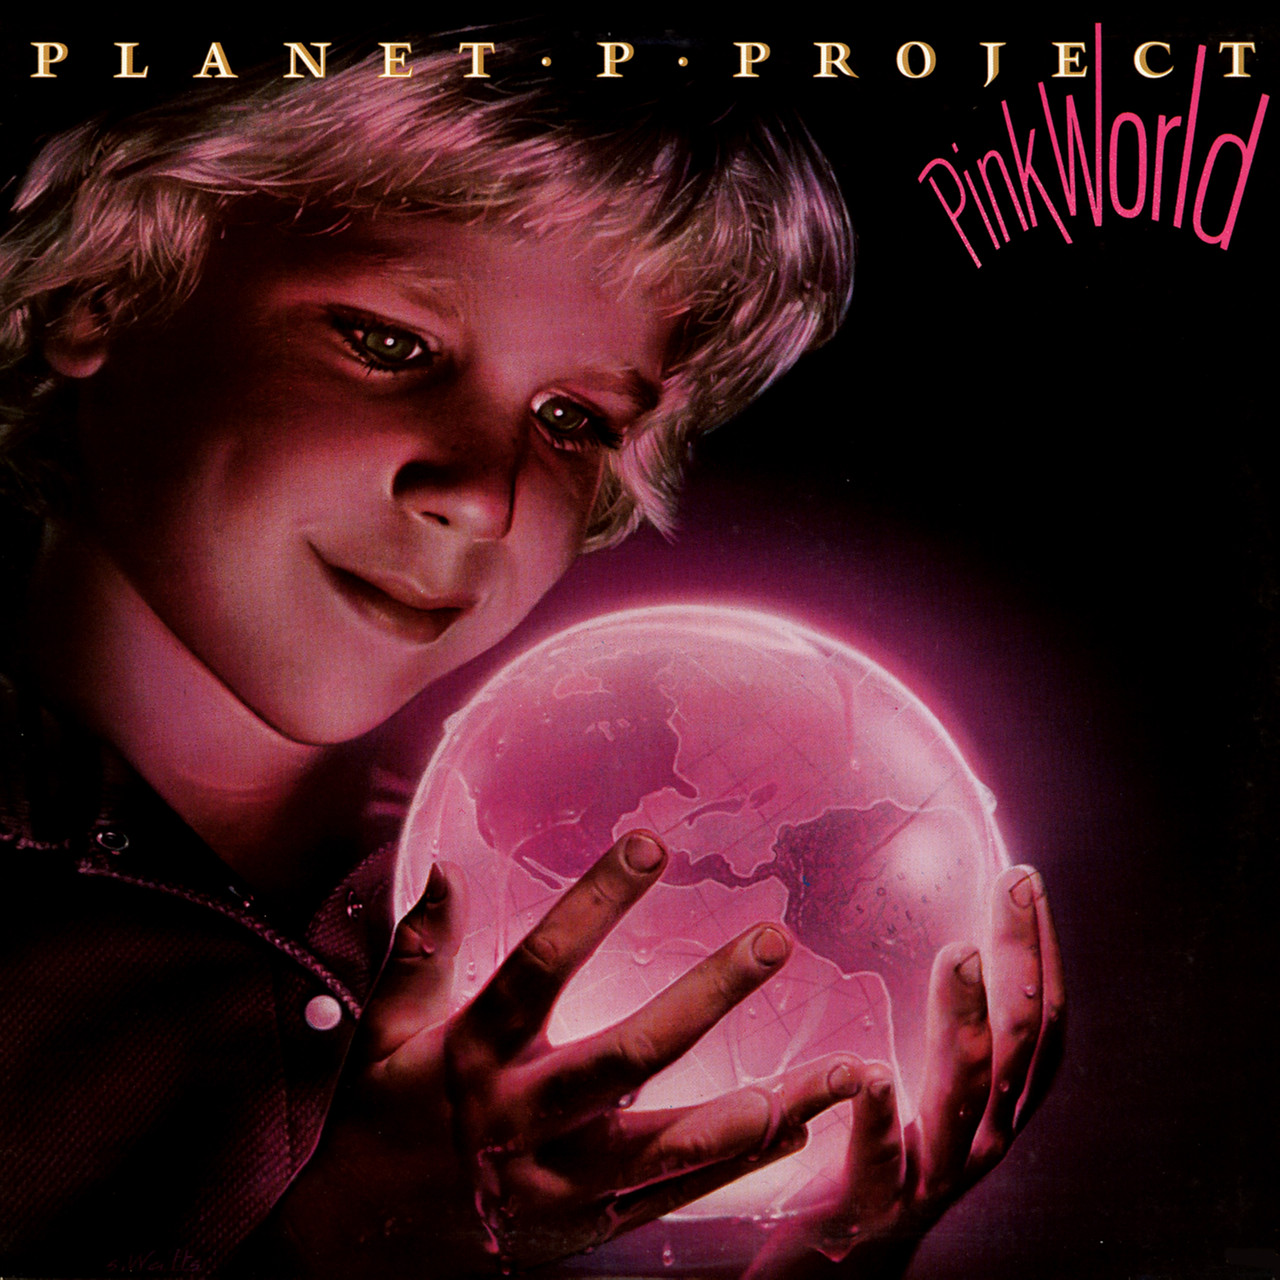 Planet P Project & Pink World released by the group Planet P Project AKA Tony Carey available on LP and CD Deluxe bundle.